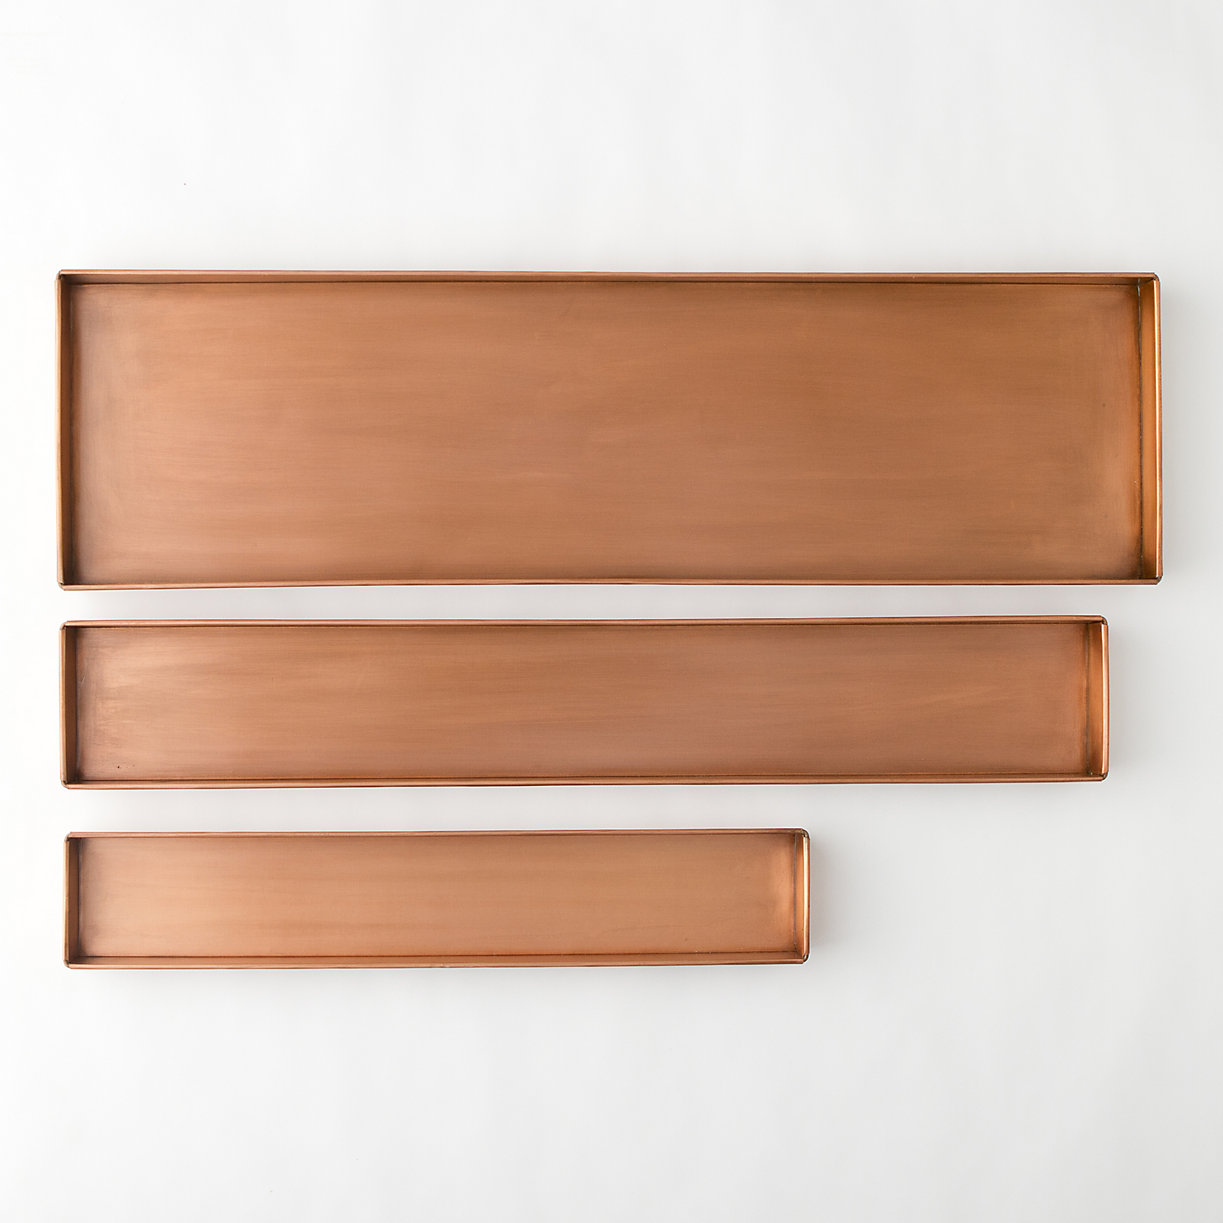 Habit form rectangle tray copper 24 36 terrain for Long rectangular candle tray